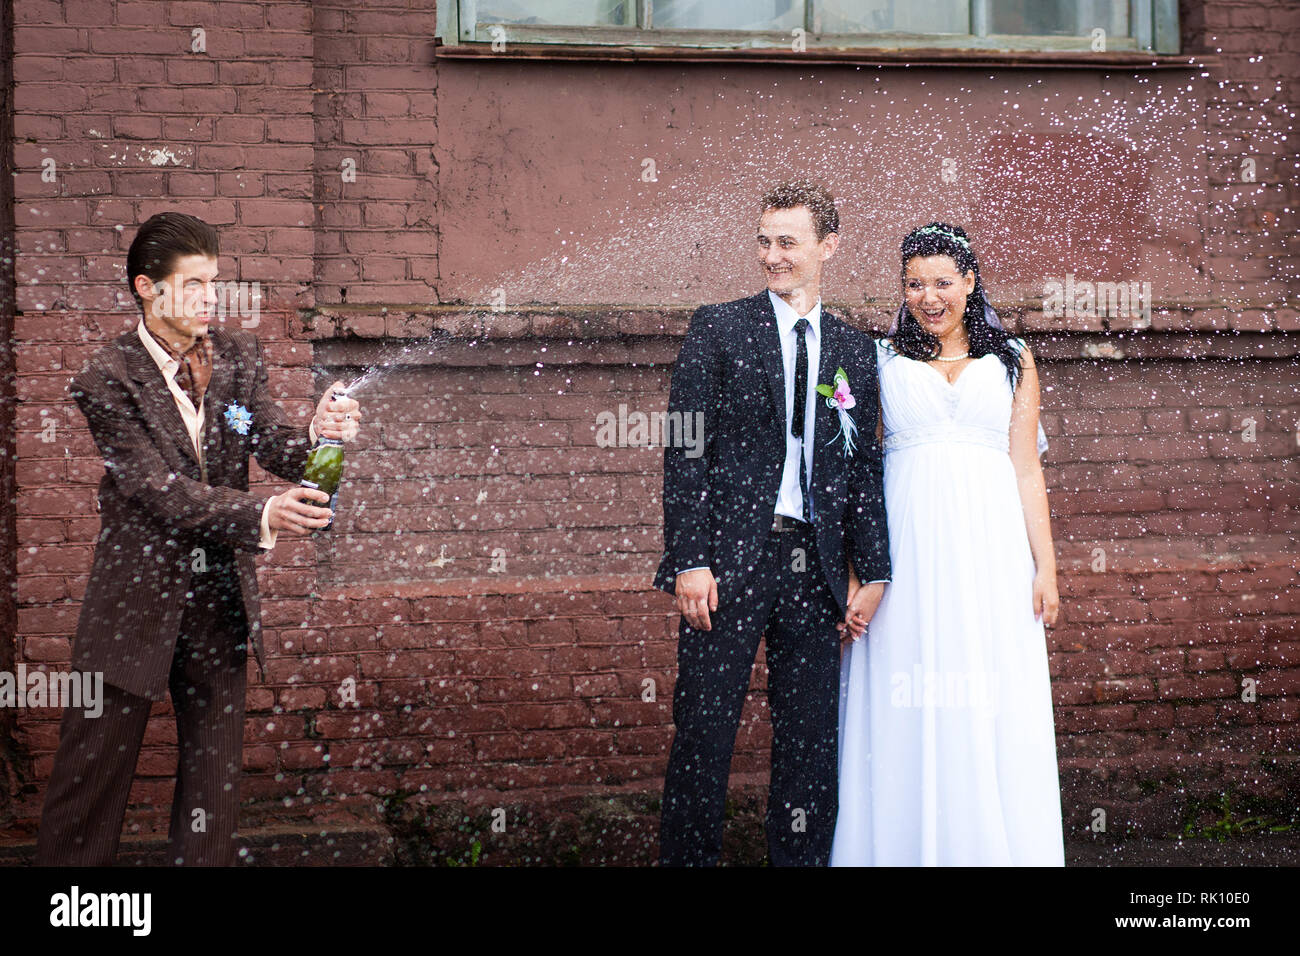 A witness at the wedding opened champagne with splashes - Stock Image